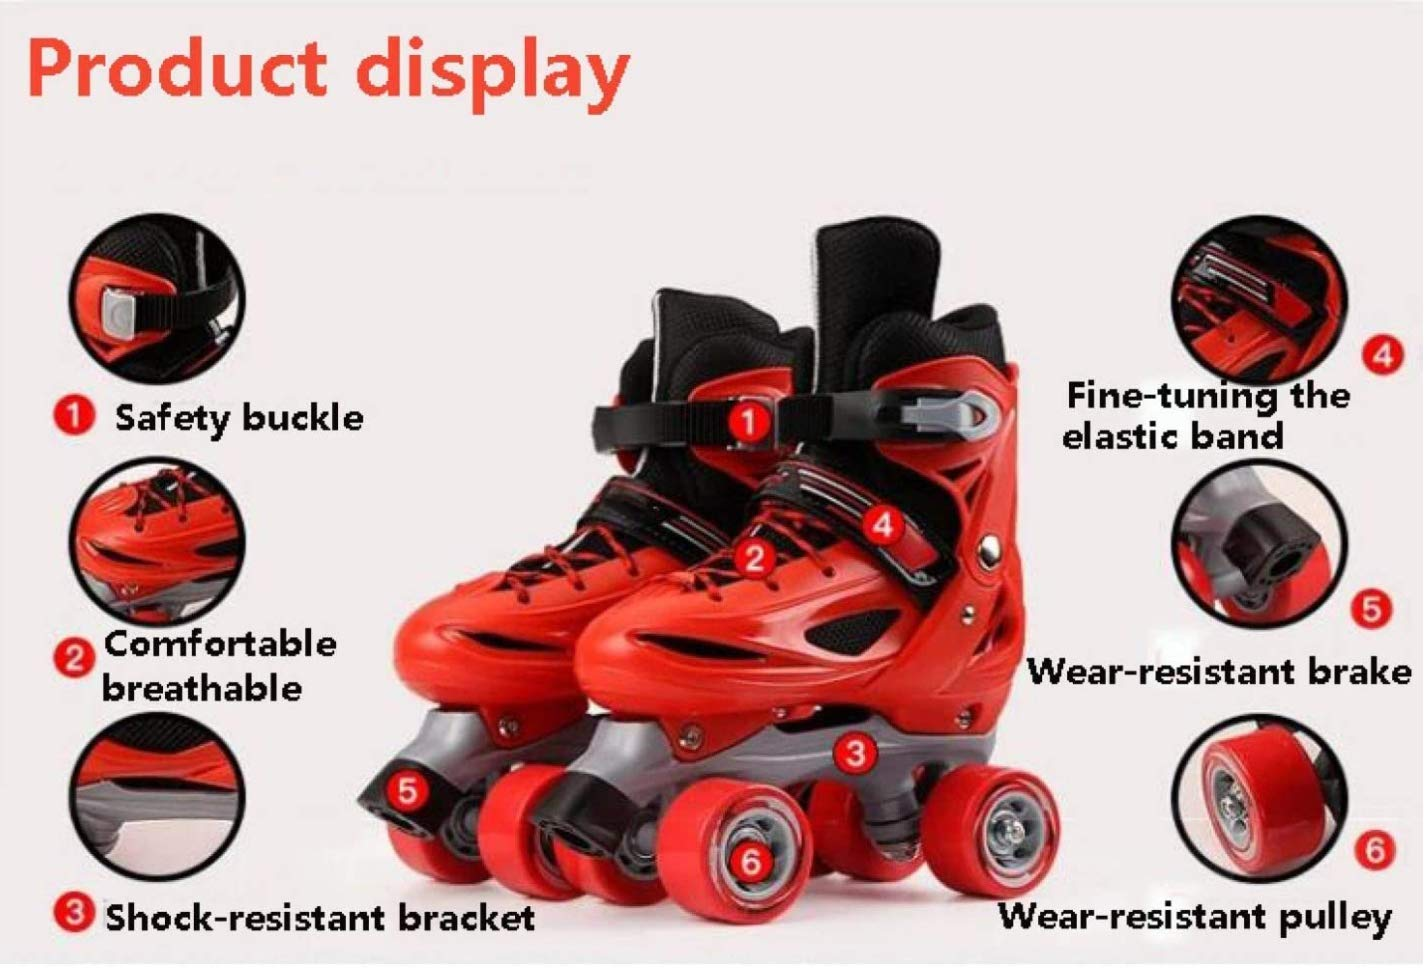 LLSZ Roller Skates Adjustable for Kids,Double Row 4 Wheel With All Wheels,Fun for Girls and Ladies (Color : Pink, Size : M)